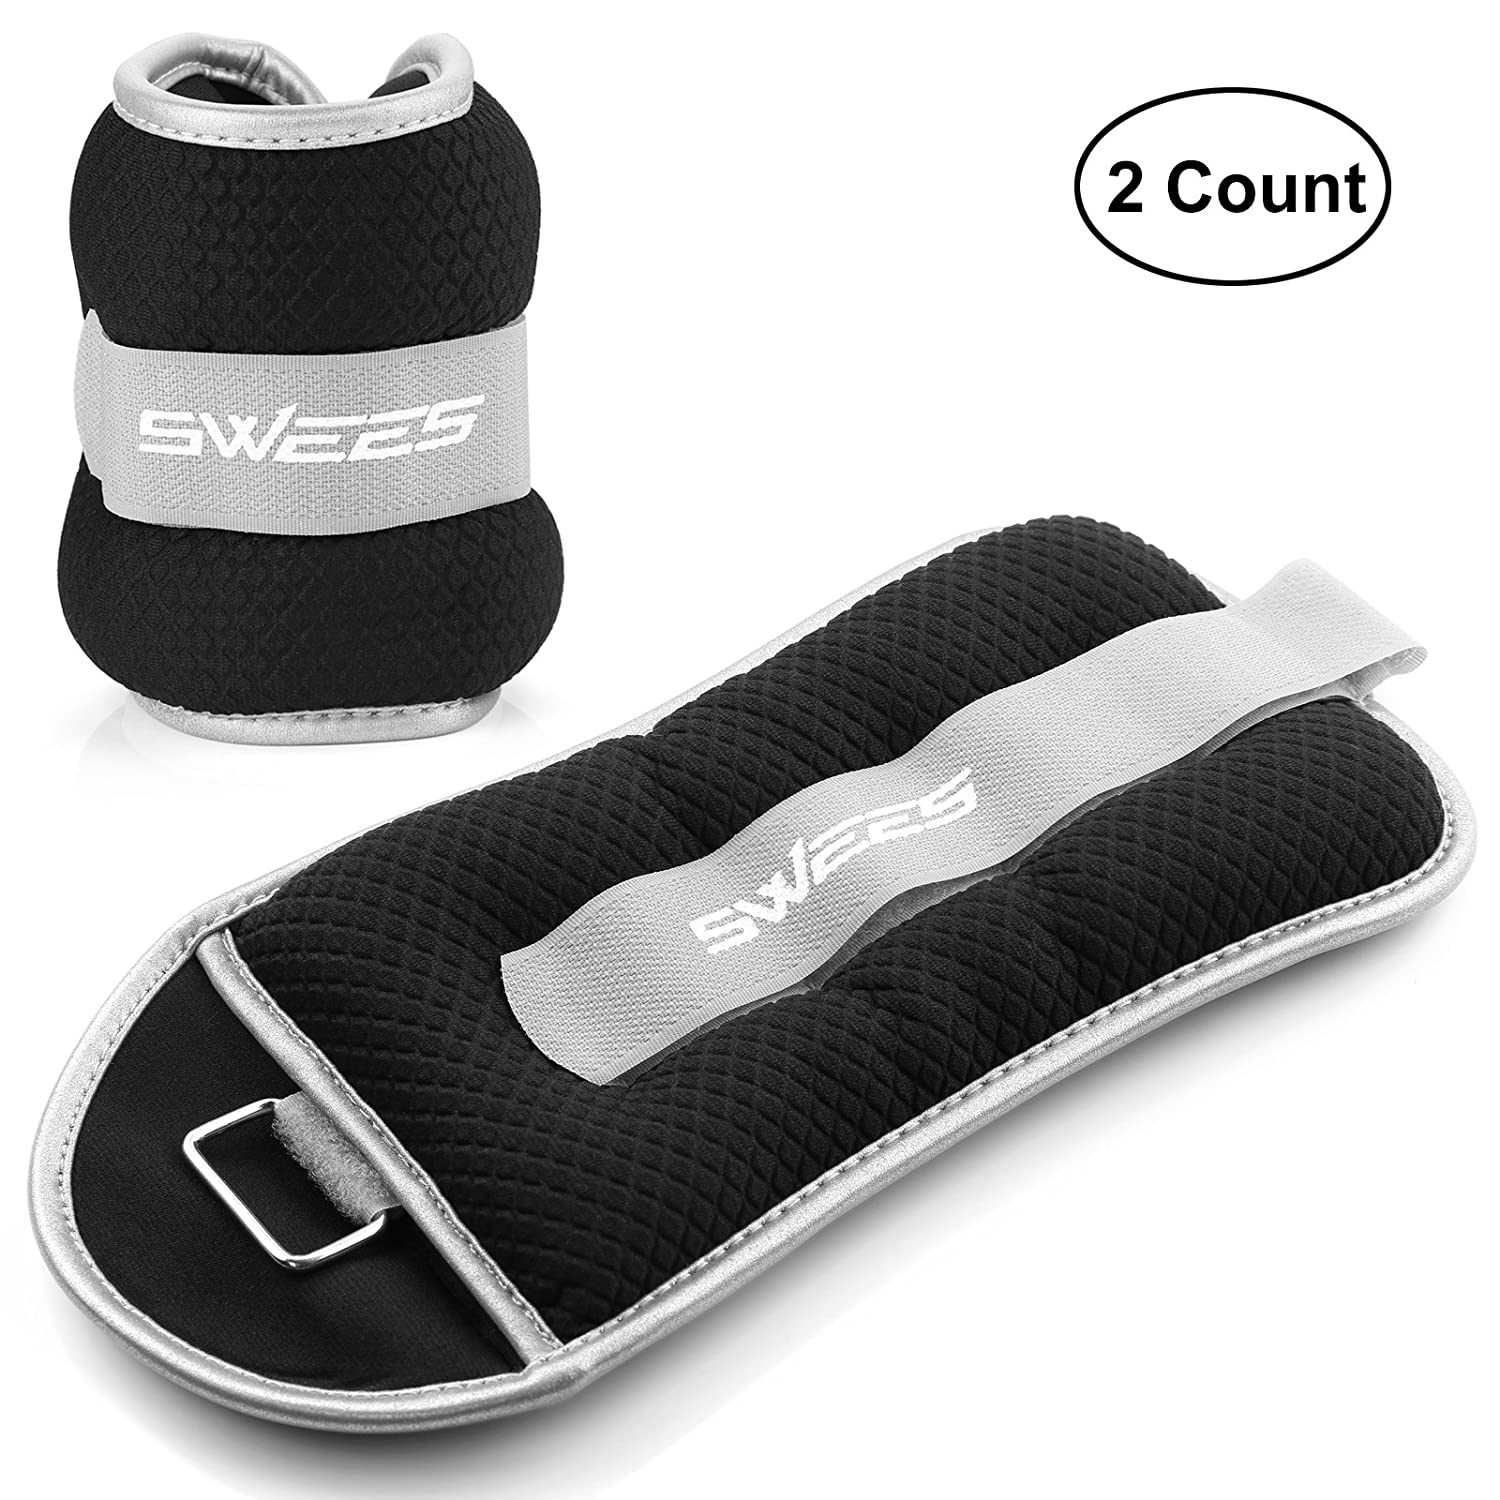 SWEES Ankle Weights (1 Pair), Ankle/Wrist Weights Pair Set with Adjustable Strap for Arm, Hand & Leg - 1 lb, 2 lbs, 3 lbs, 5 lbs for Women, Men or Children - Best for Fitness, Exercise, Walking, Gym Gymnastics ANKLE-WRIST-3LB-BLACK